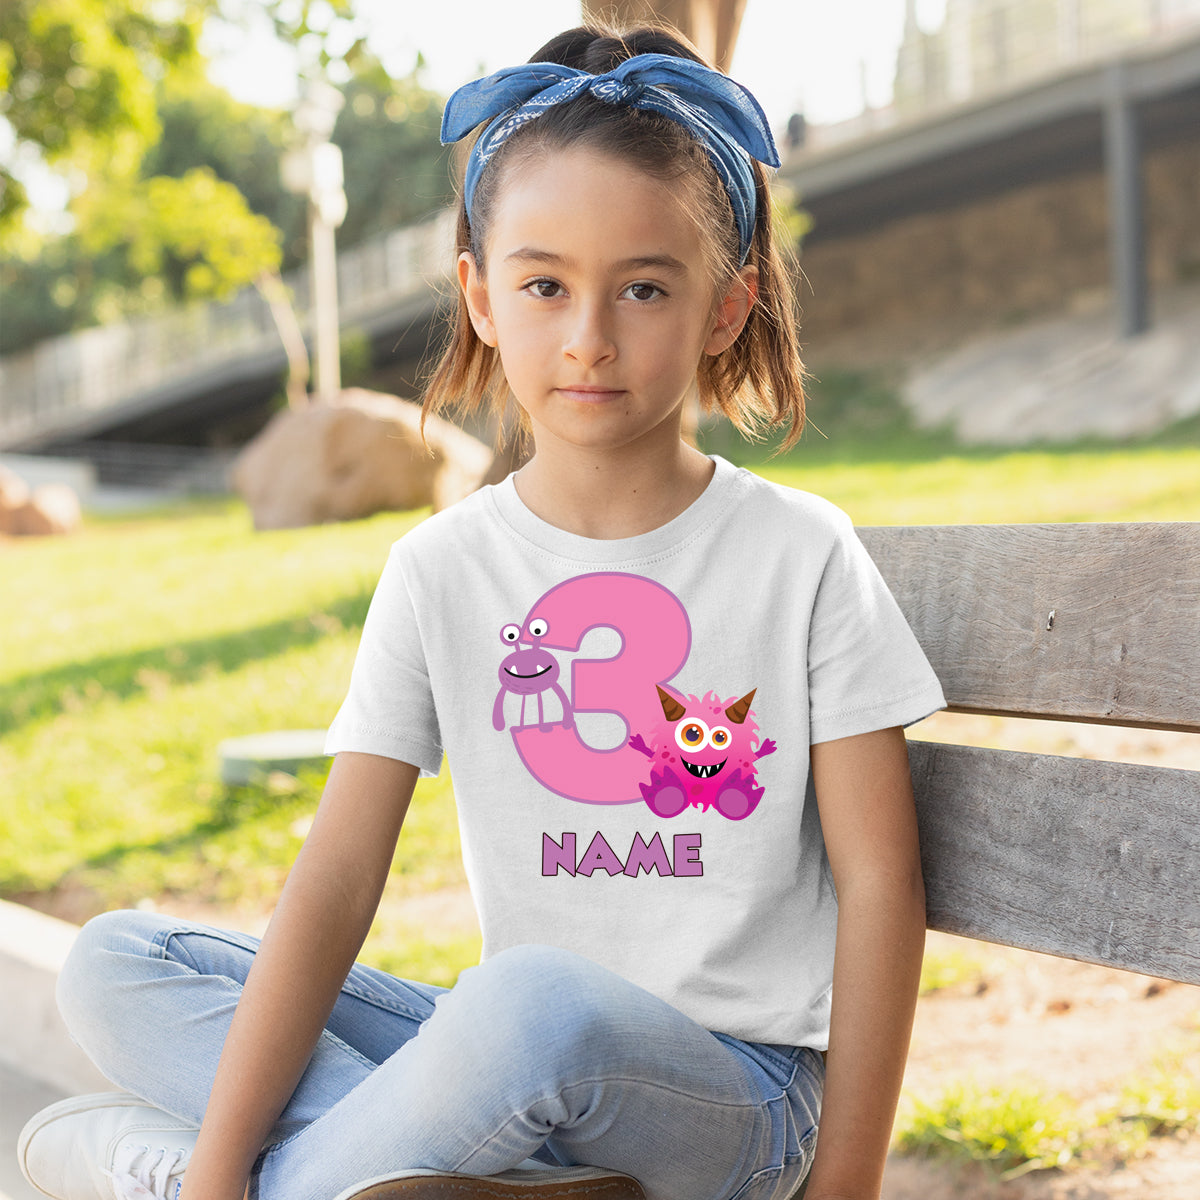 Sprinklecart Kids Customized Name Printed 3rd Birthday Monster T Shirt, Poly-Cotton (White)